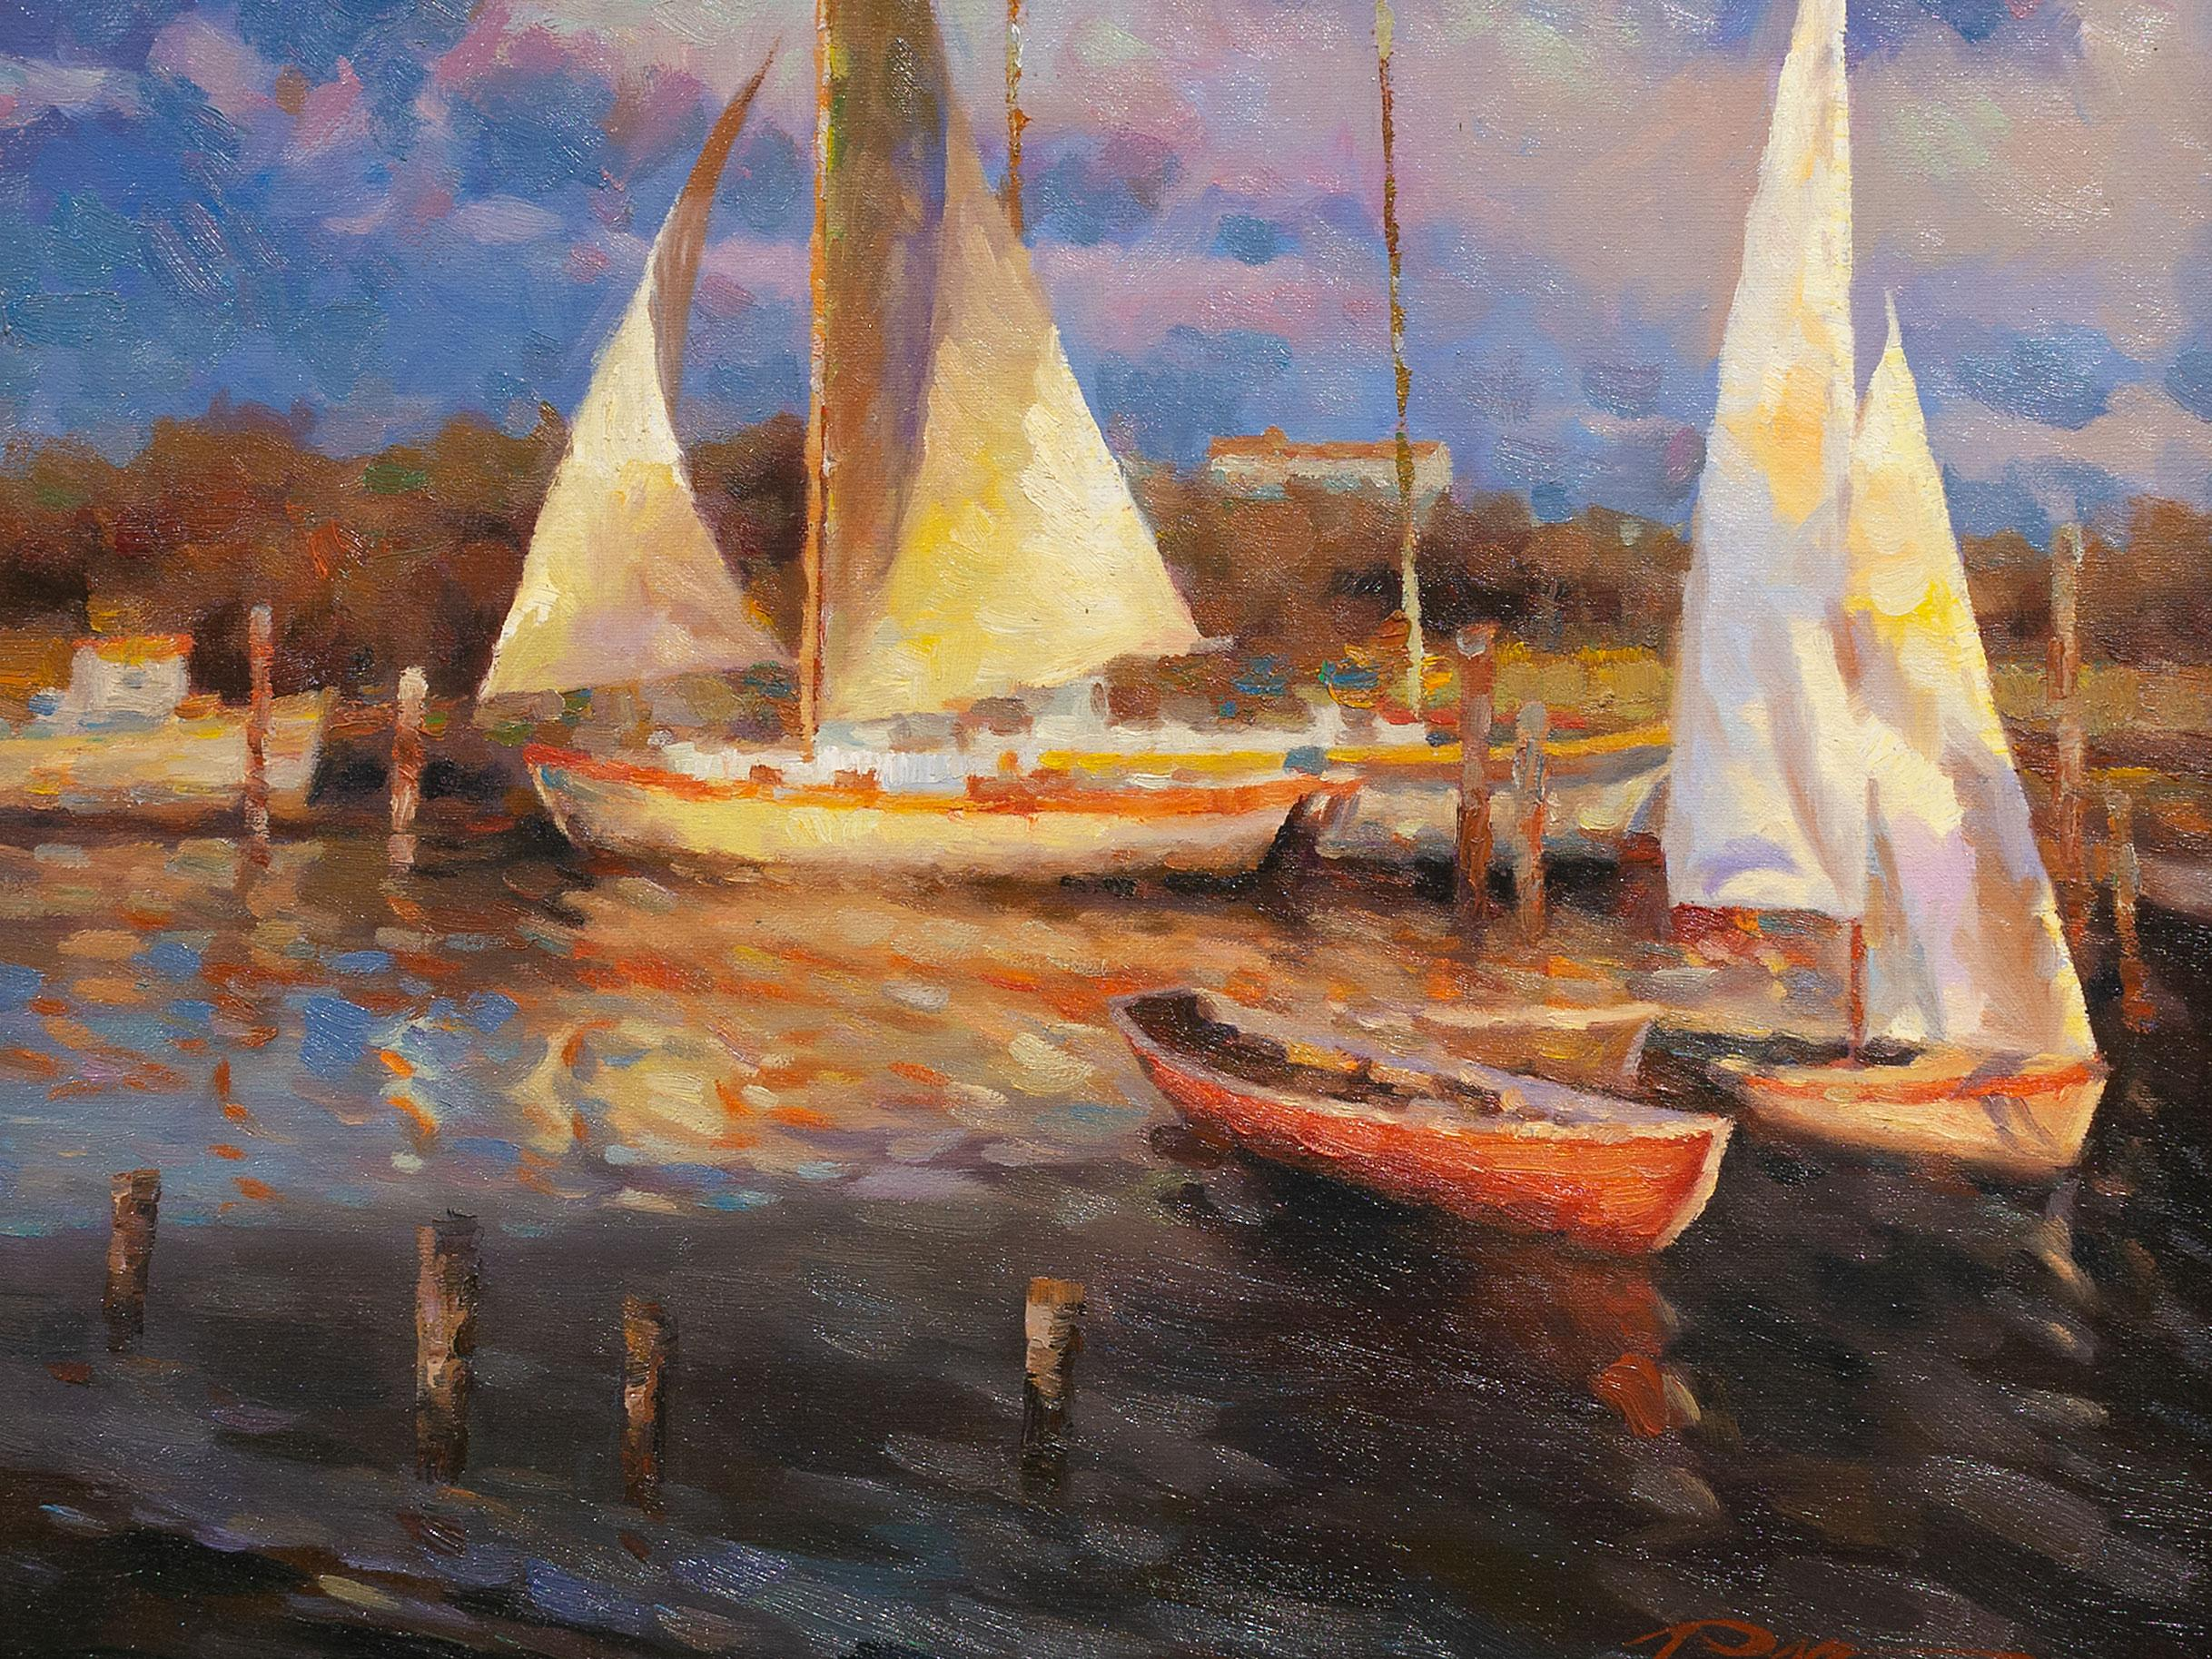 Stephen Pan (Chinese, born 1963) Oil, Sailing Boats, Signed, 40 x 50